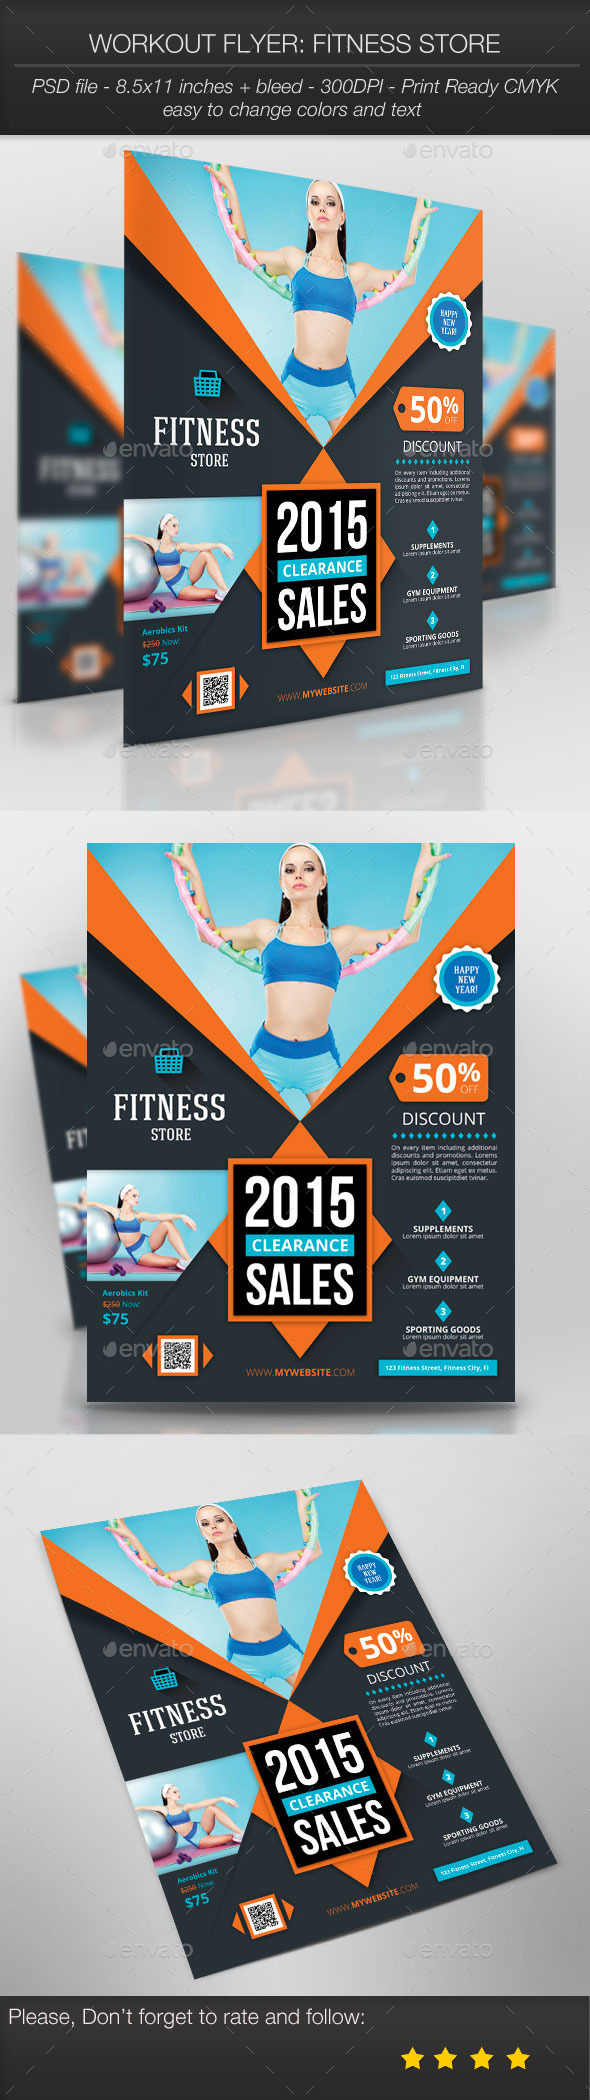 Workout Flyer Fitness Store